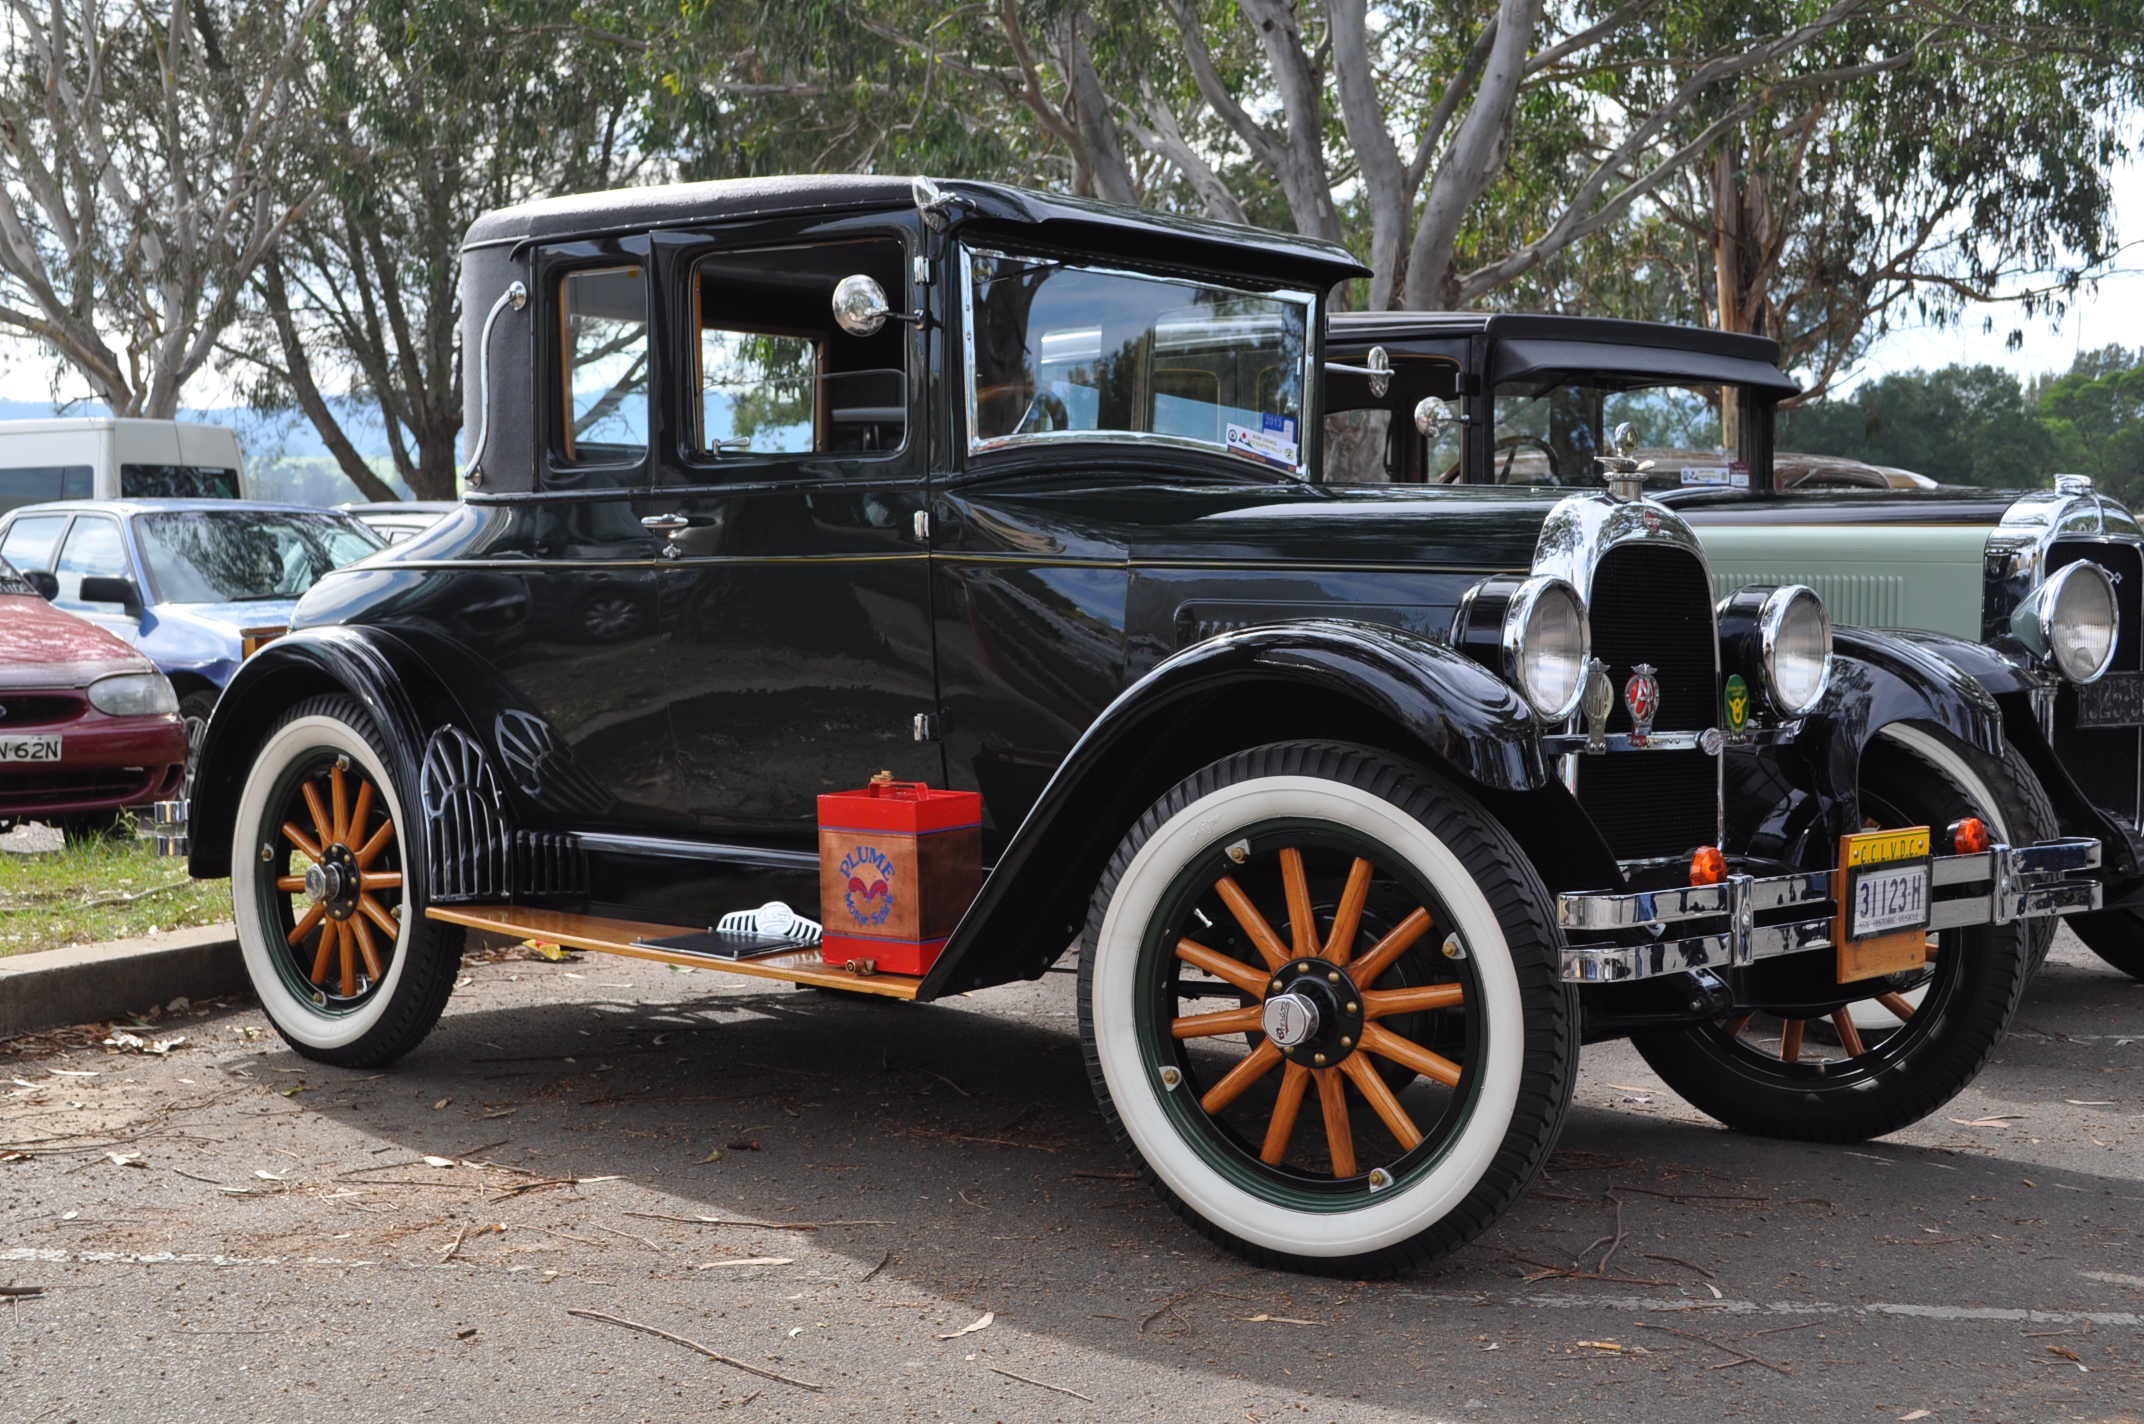 Council of Heritage Motor Clubs NSW Inc